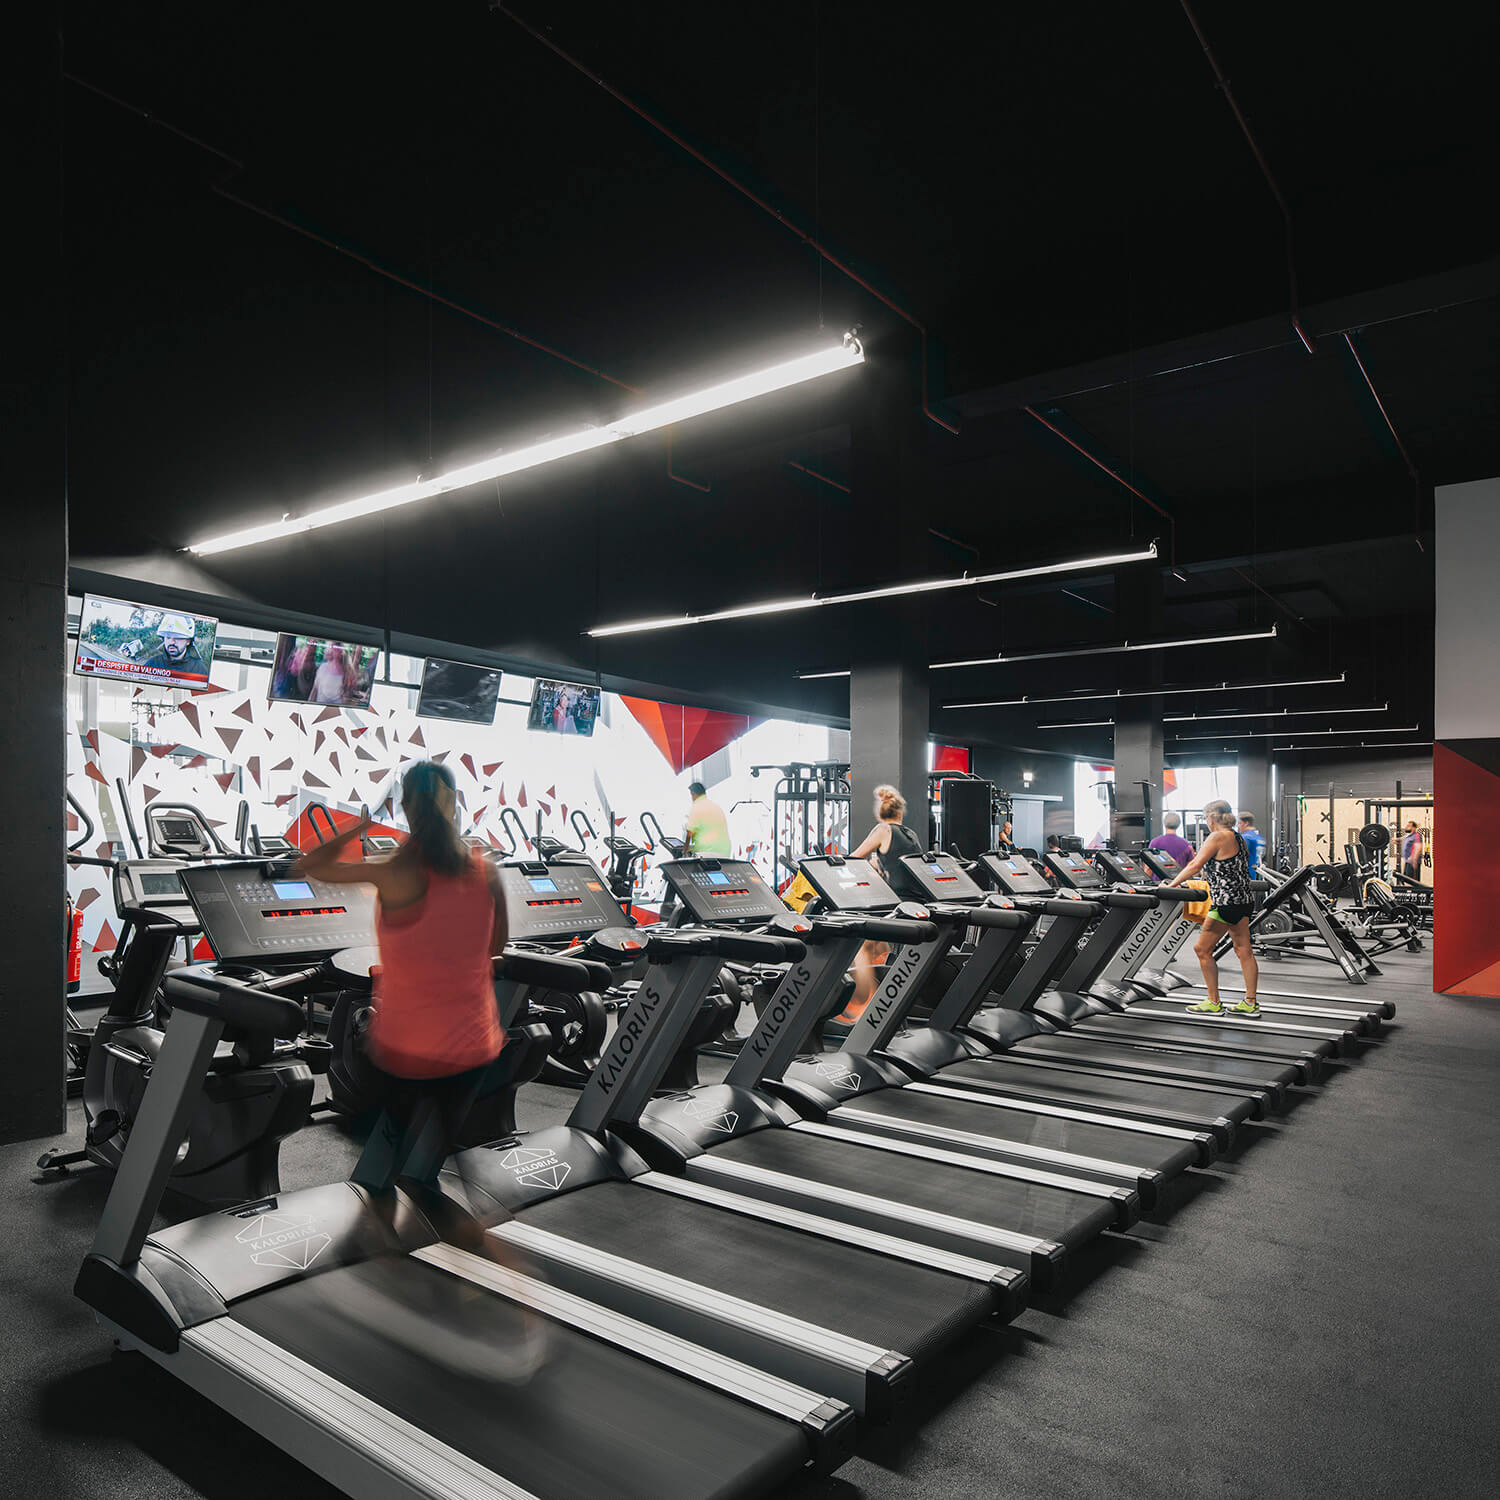 Cardio Room Interiors: Perspective To The Outside Of The